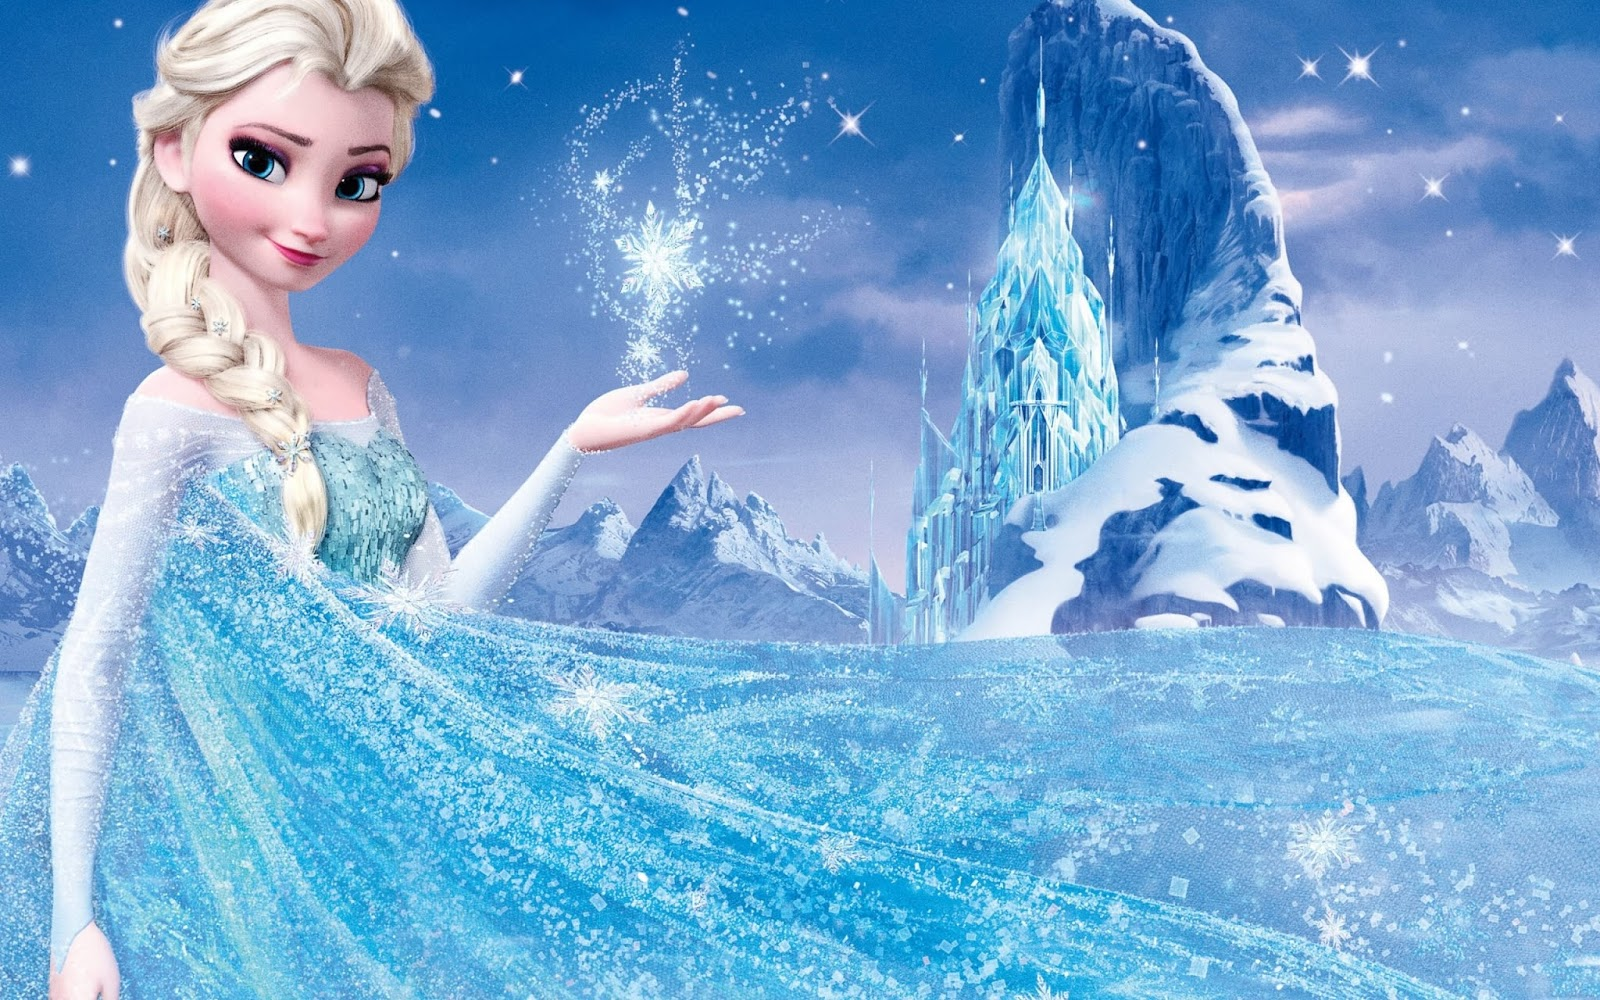 Disney-Frozen-1080p-%C3%97-pixels-wallpaper-wp3804579